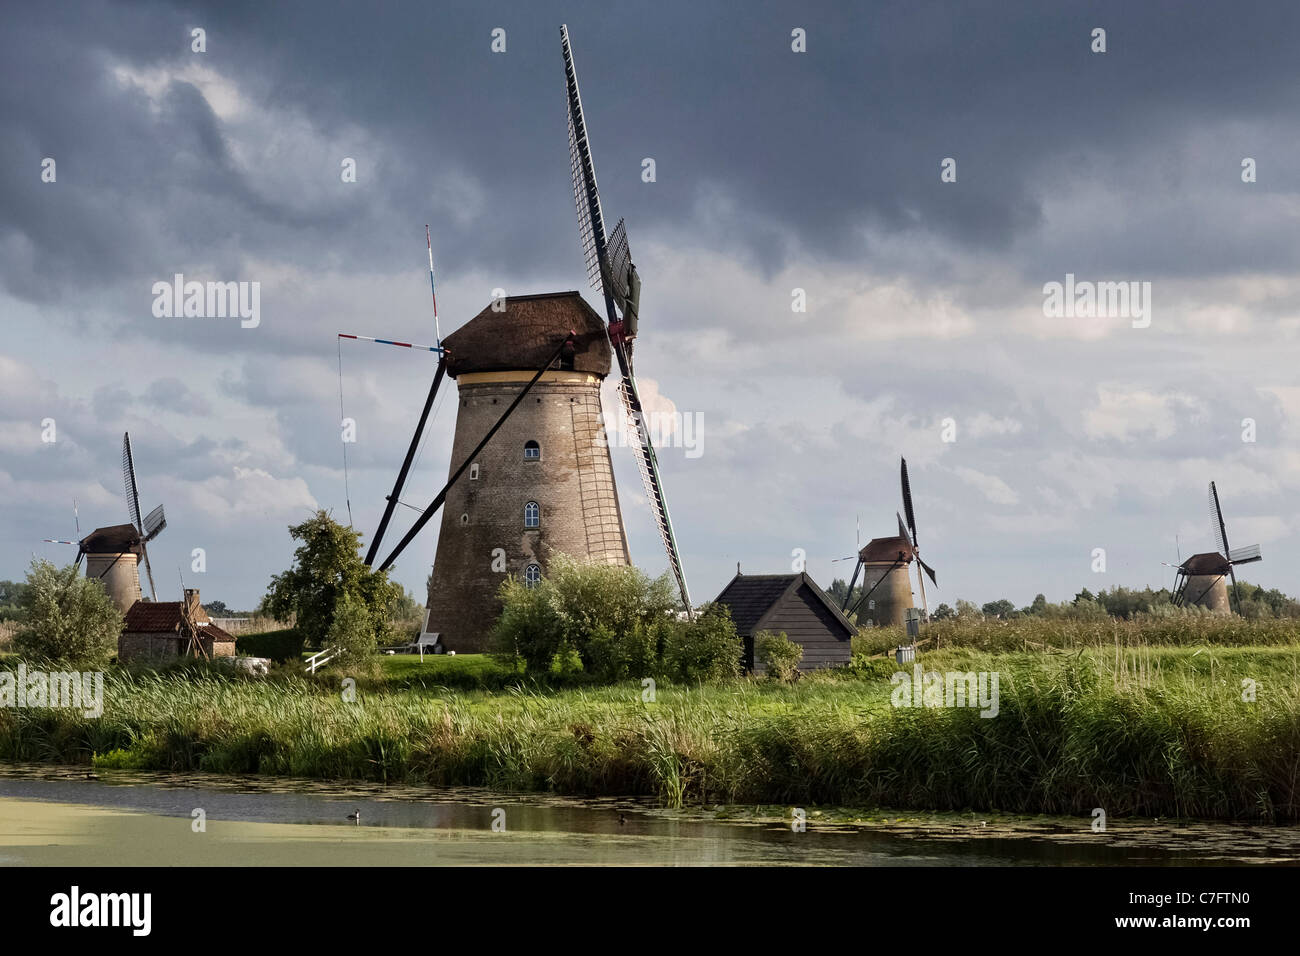 Traditional windmills at Kinderdijk in The Netherlands Stock Photo